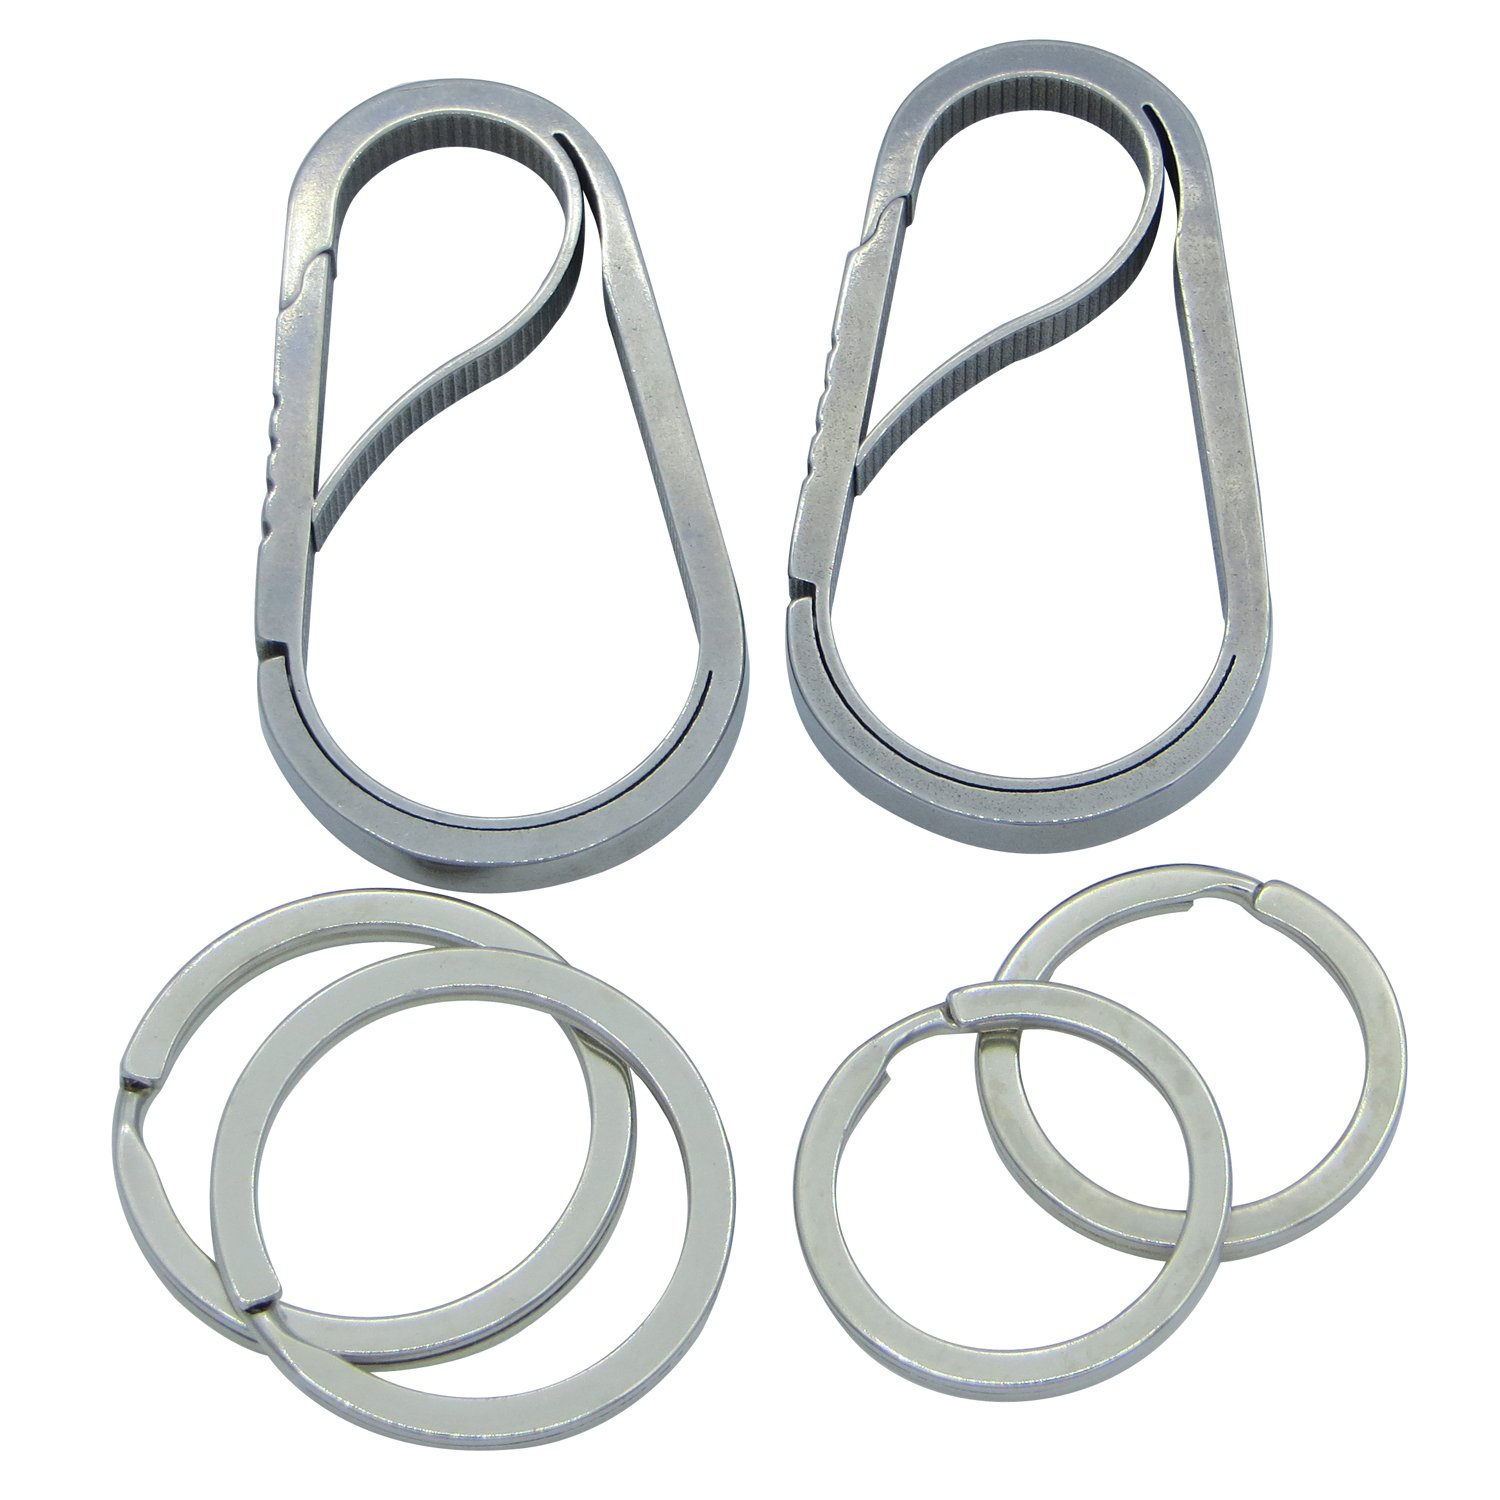 Hiking Fishing BESYL Anti-Lost Full Stainless Steel Key Chain Carabiner Home Camping Traveling